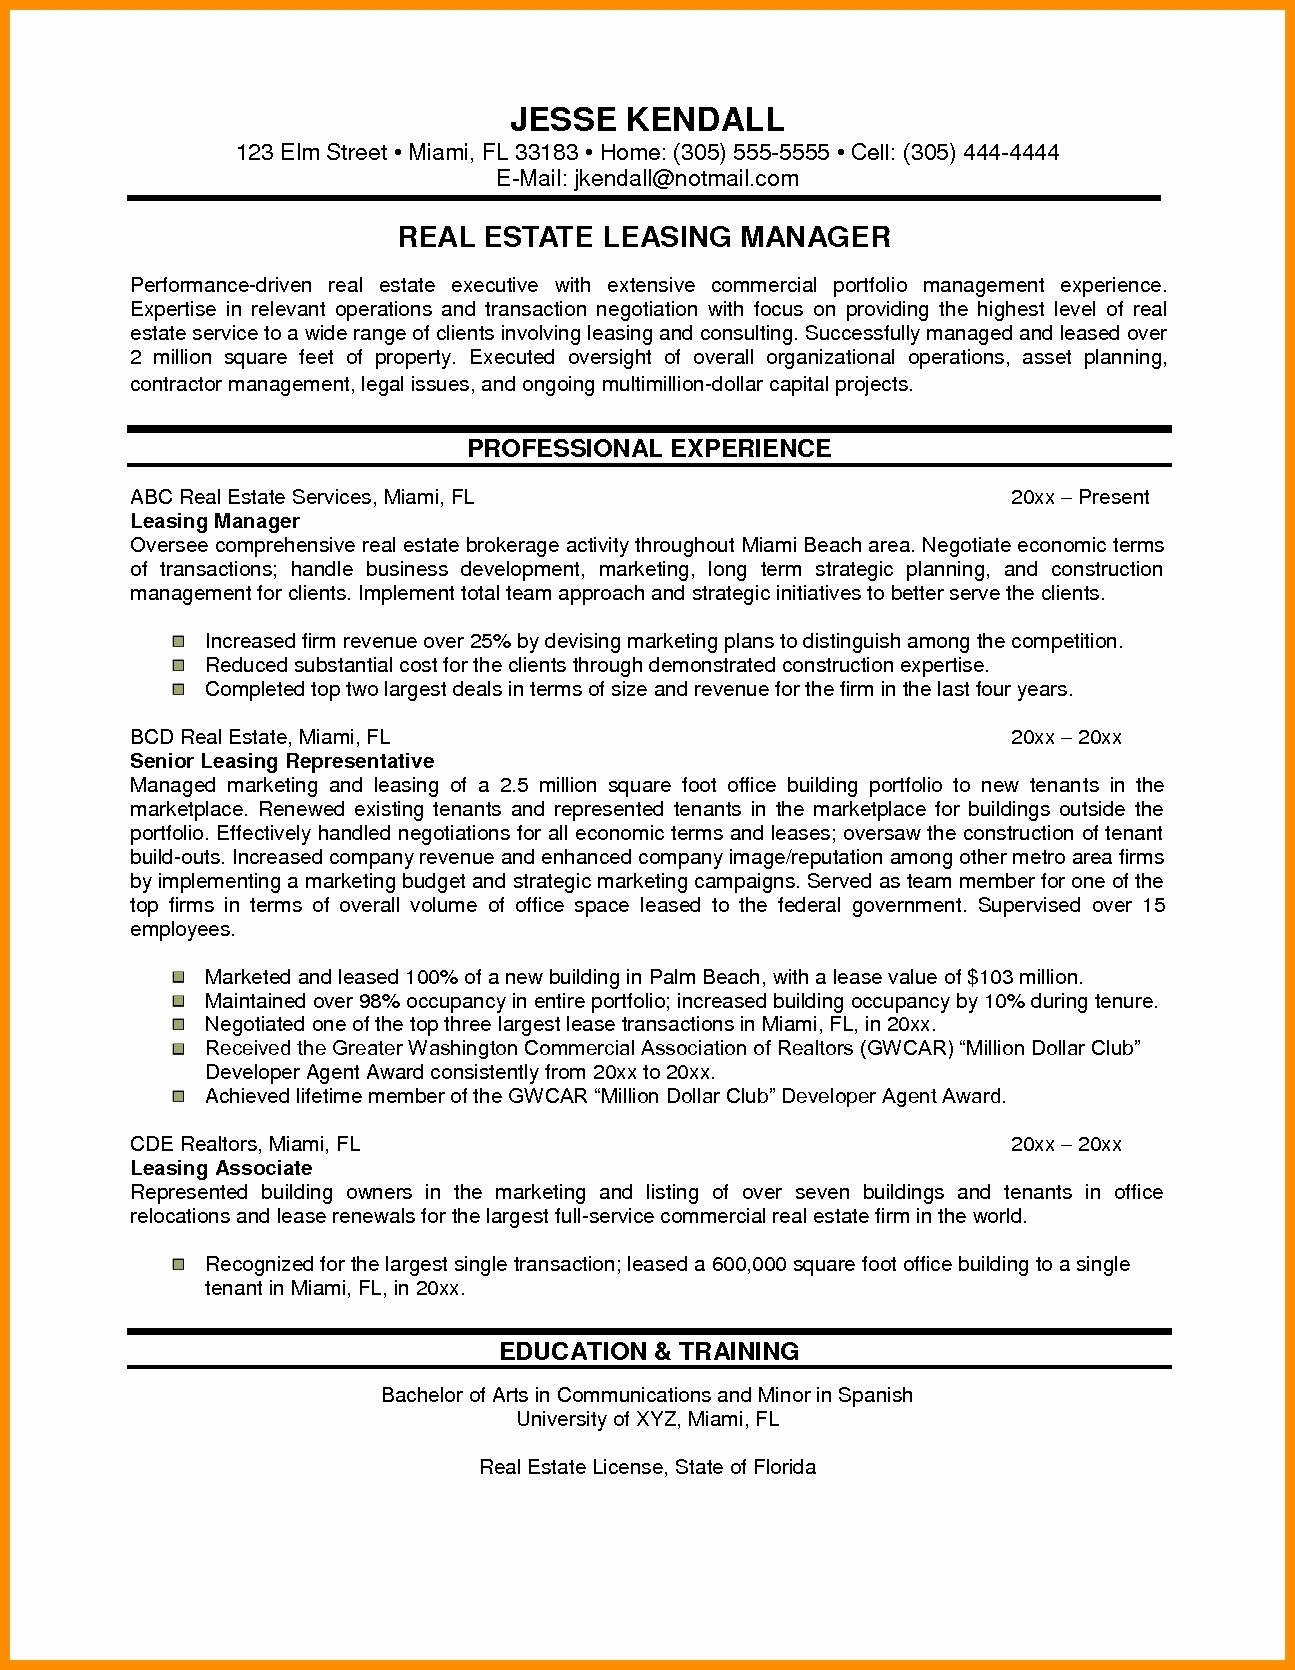 Attorney Letter Template - Real Estate attorney Resume New Sample Resume for Property Manager